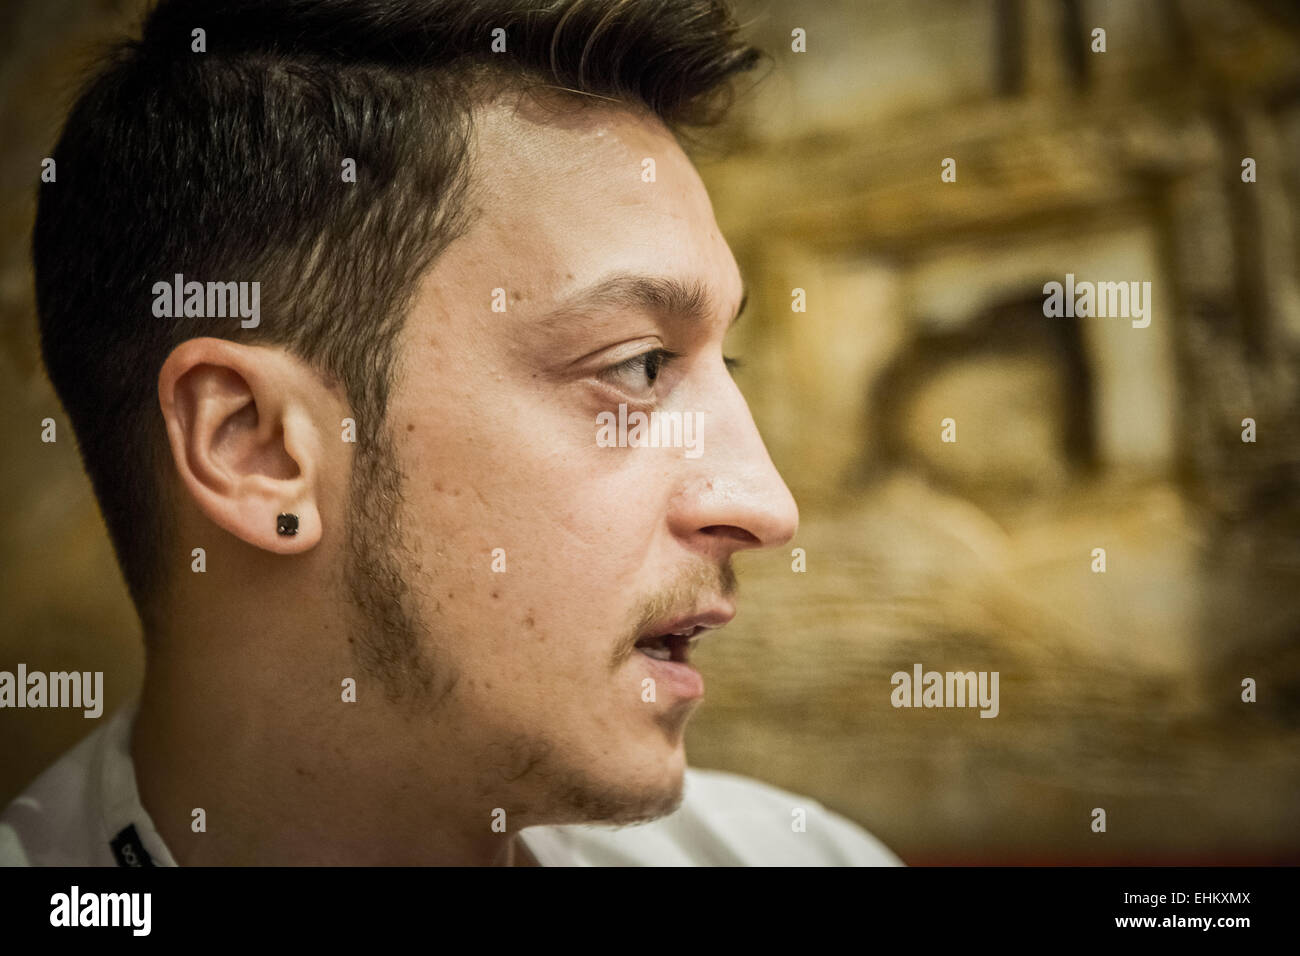 Mesut Özil, German footballer and Arsenal player gives an interview - Stock Image